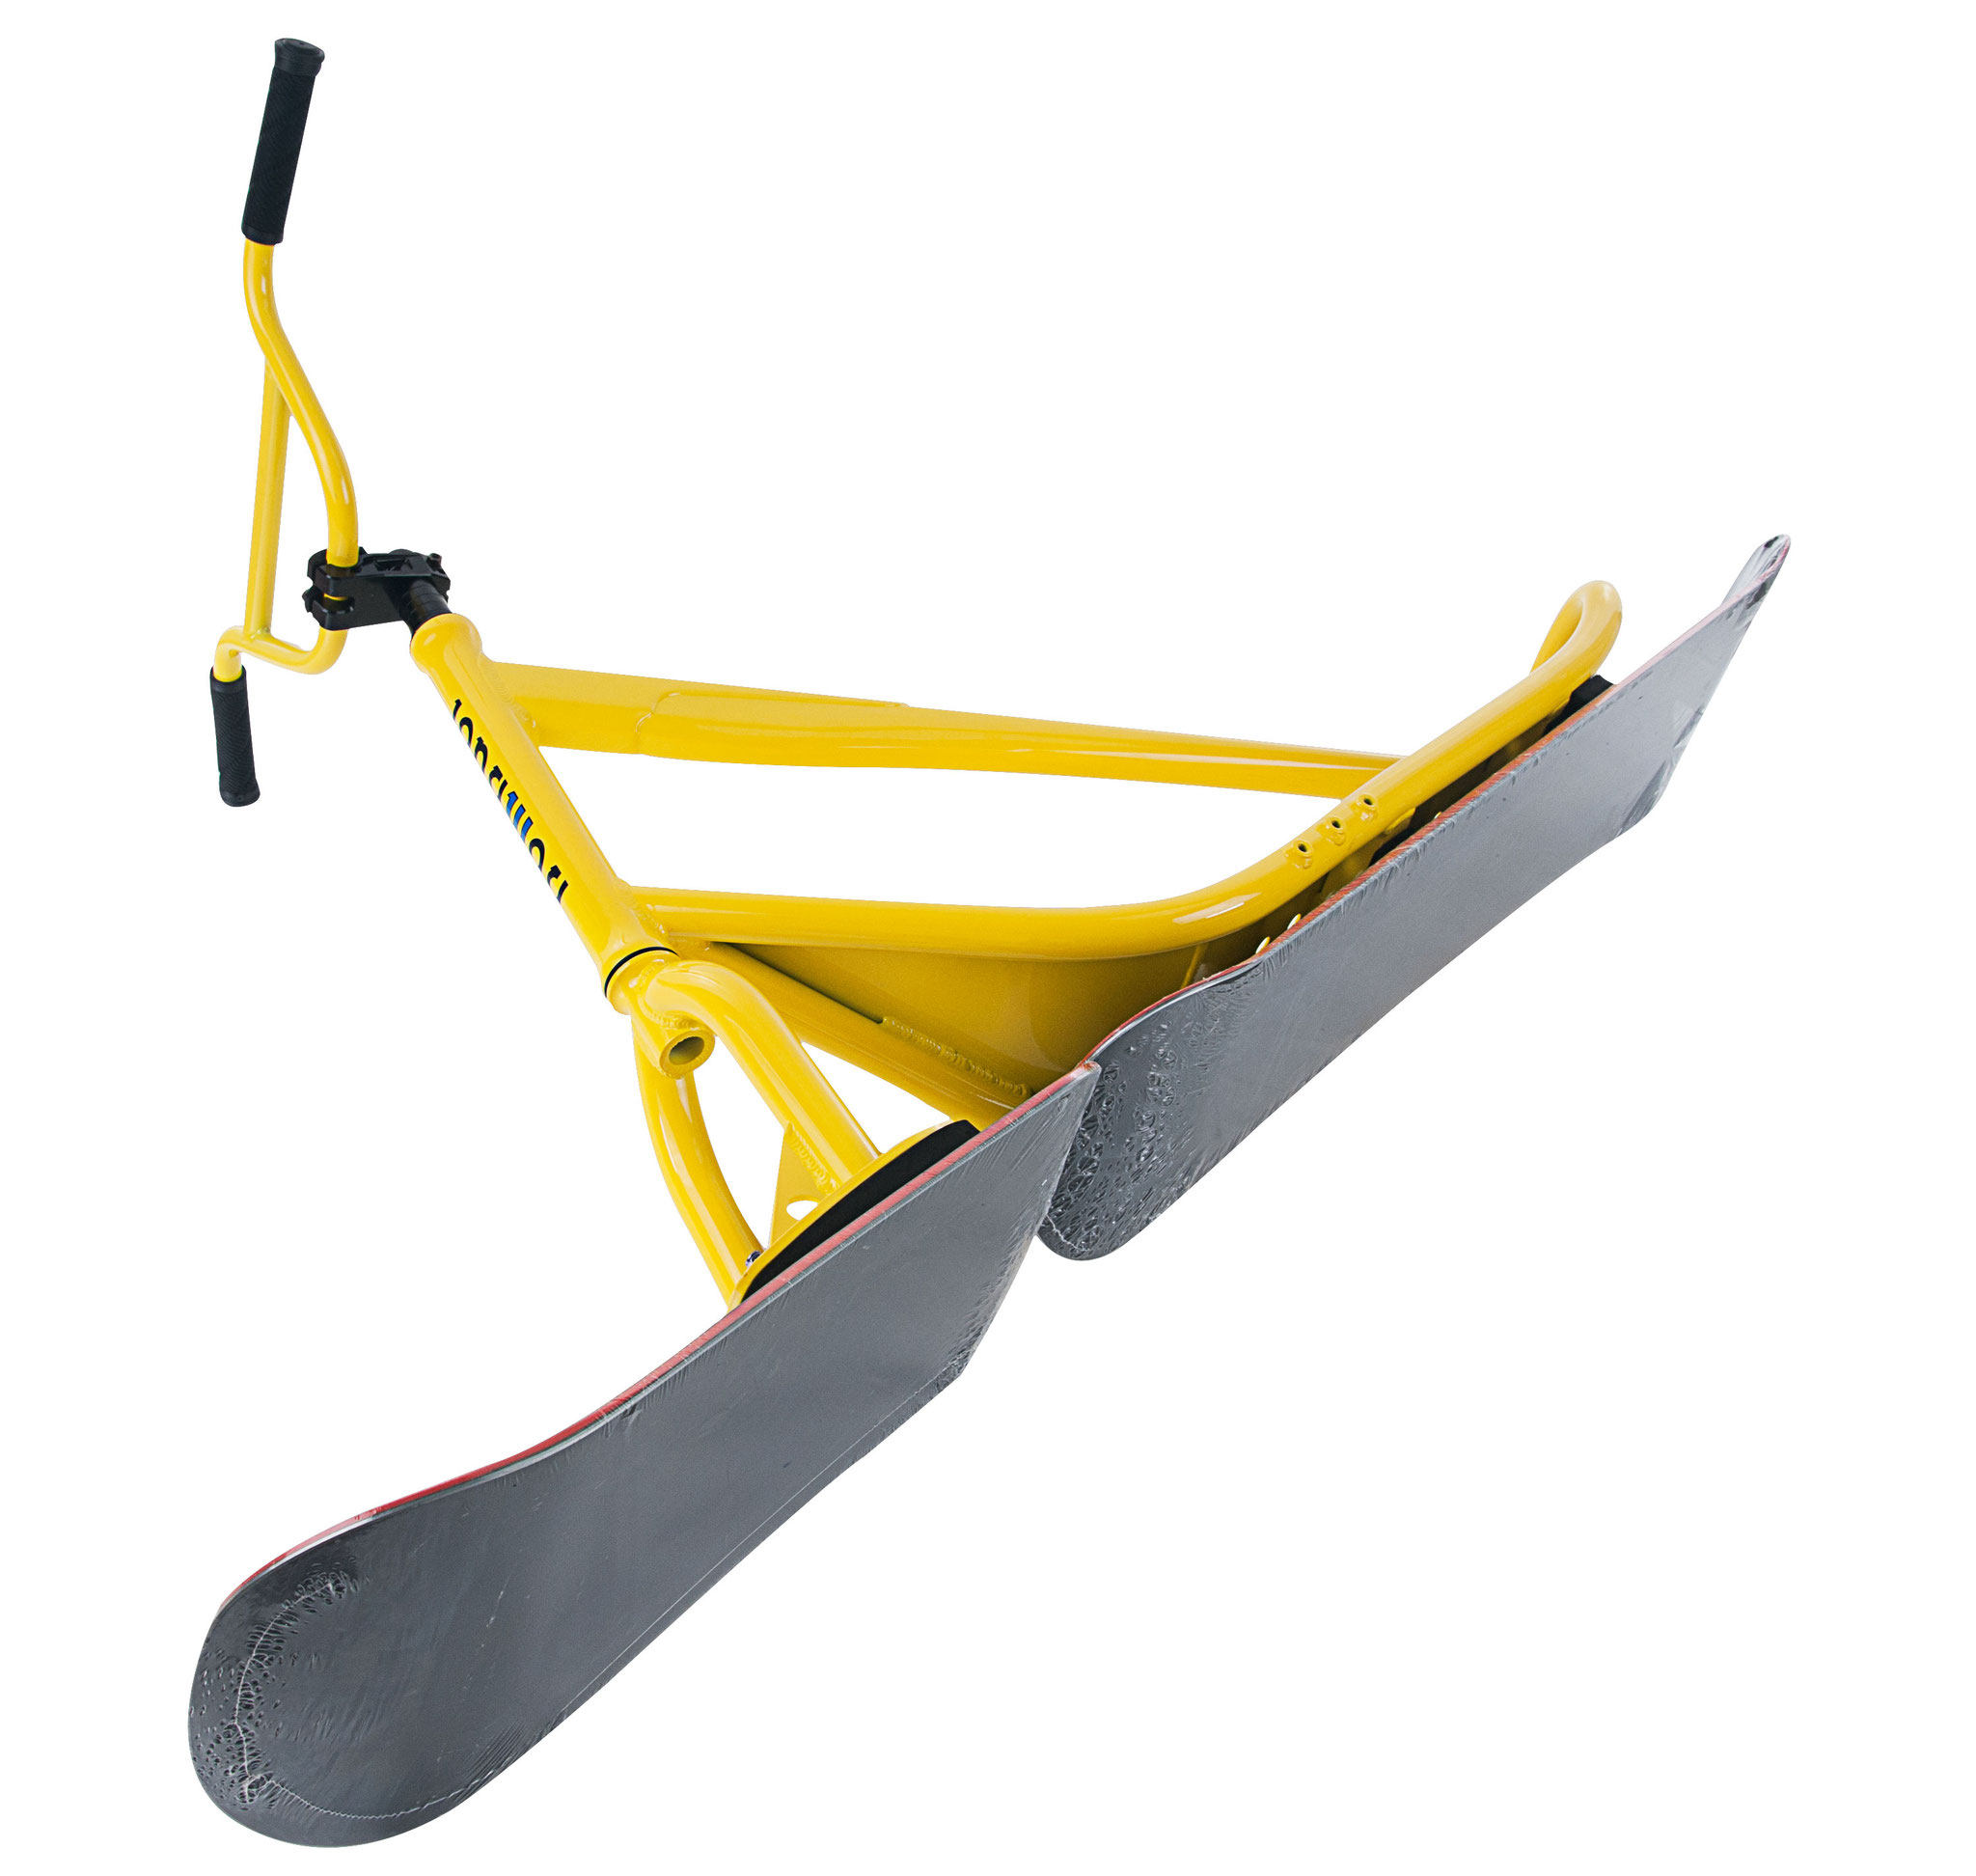 Longway Sports Snowscoot Suilbikes yellow 4